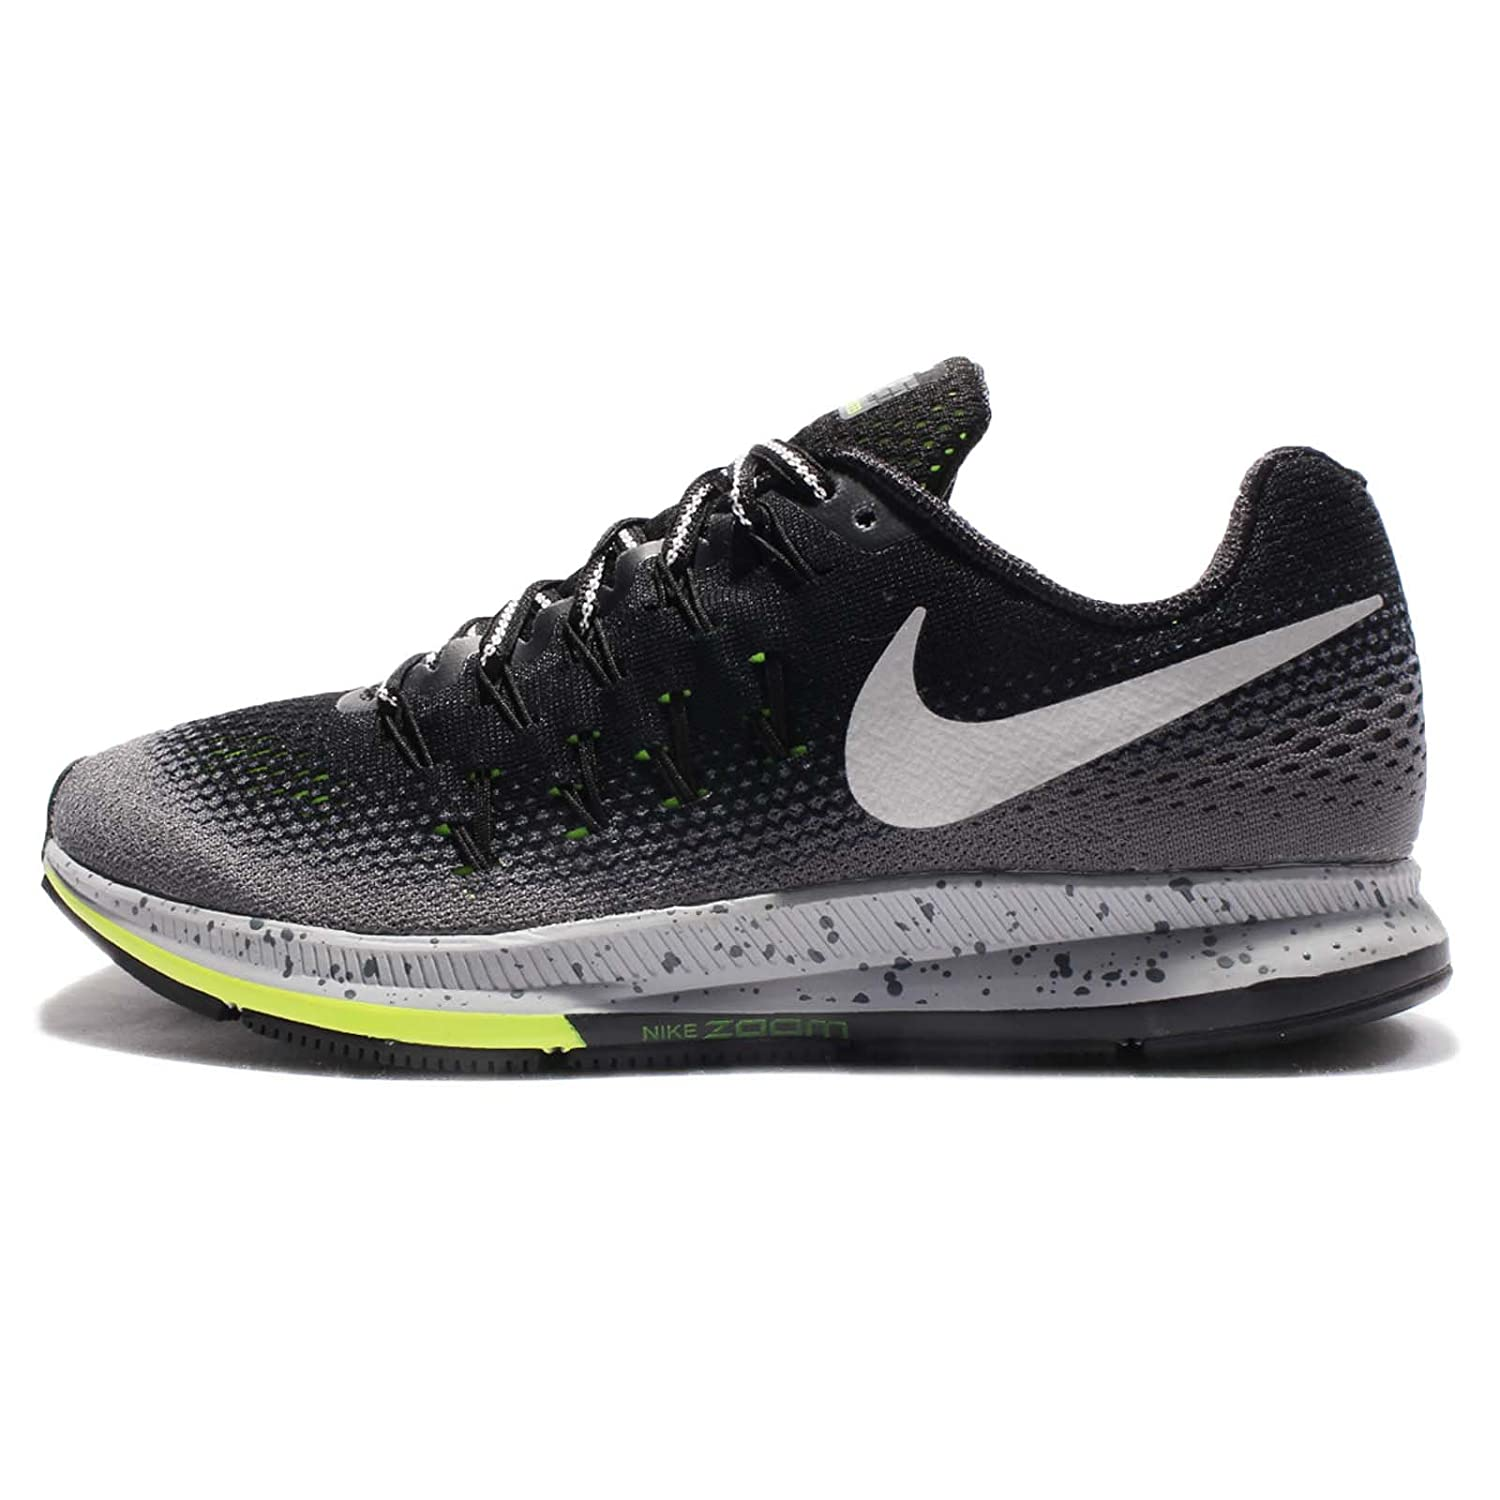 NIKE Women's W Air Zoom Pegasus 33 Shield, Black/Metallic Silver-Dark  Grey-Stealth, 10.5 M US